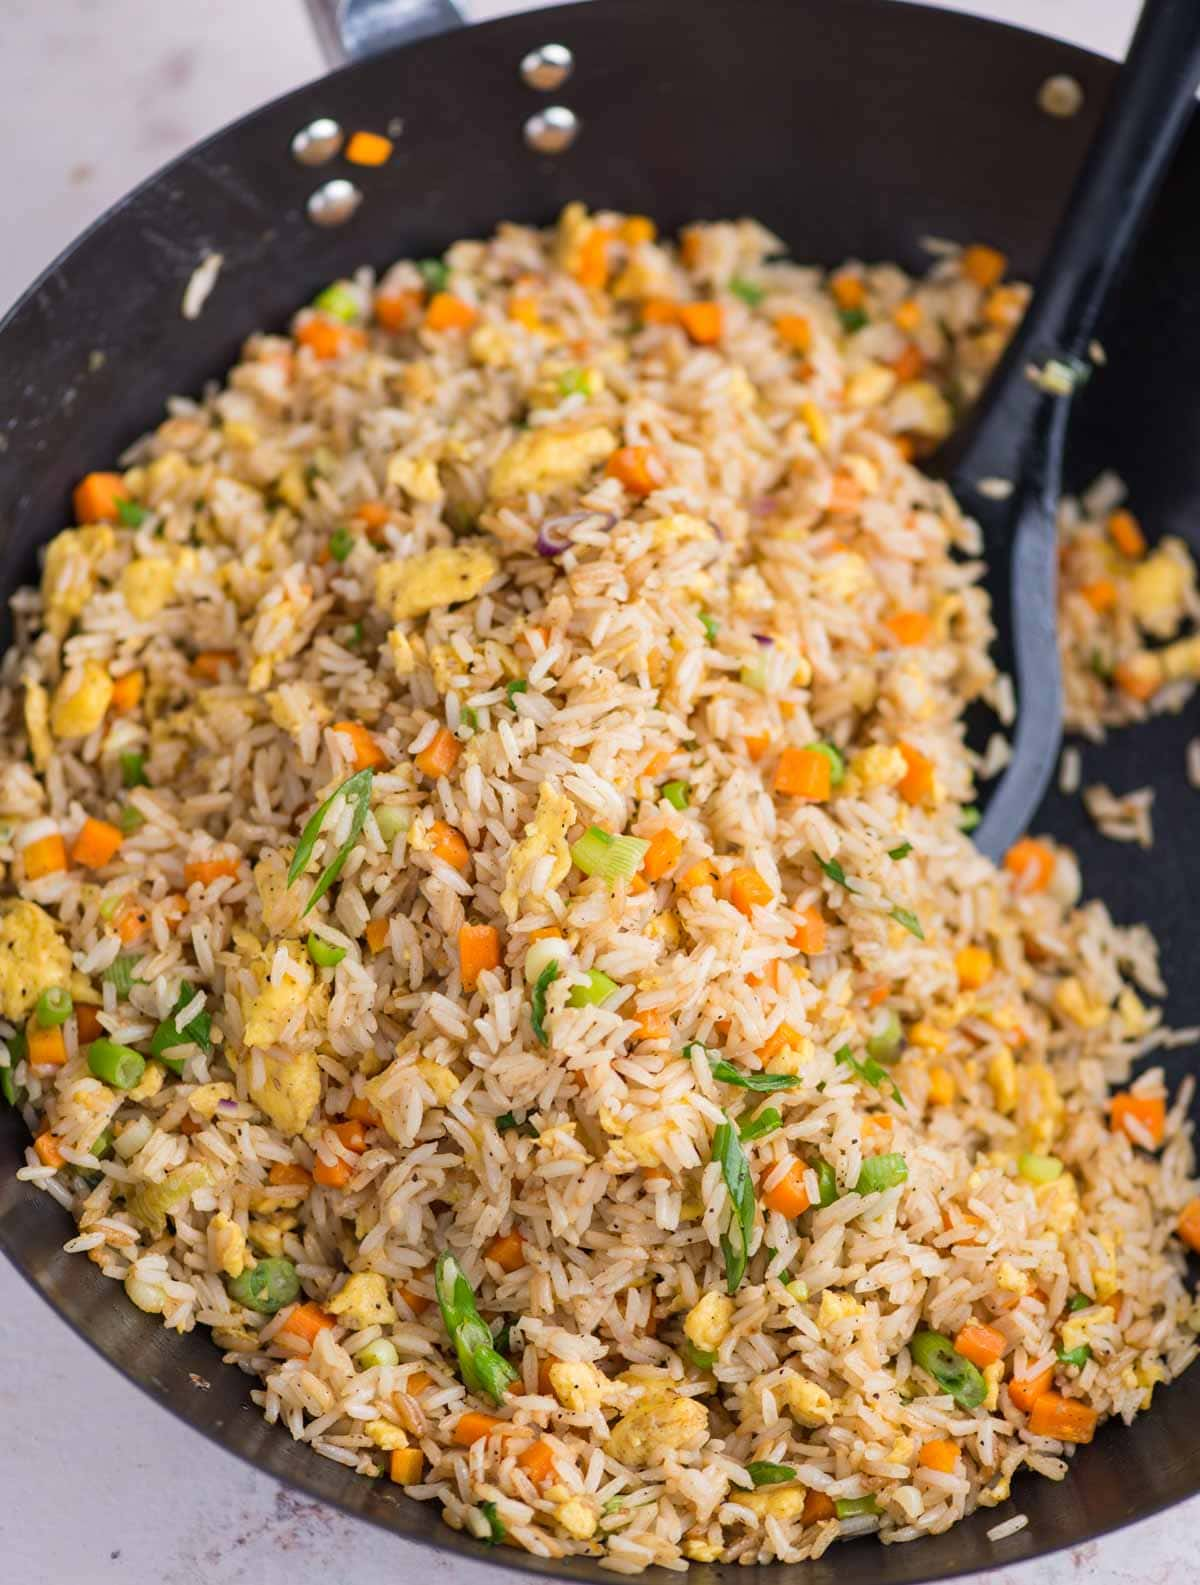 Fluffy egg rice with scrambled egg, crunchy vegetables is a one pan dinner recipe.